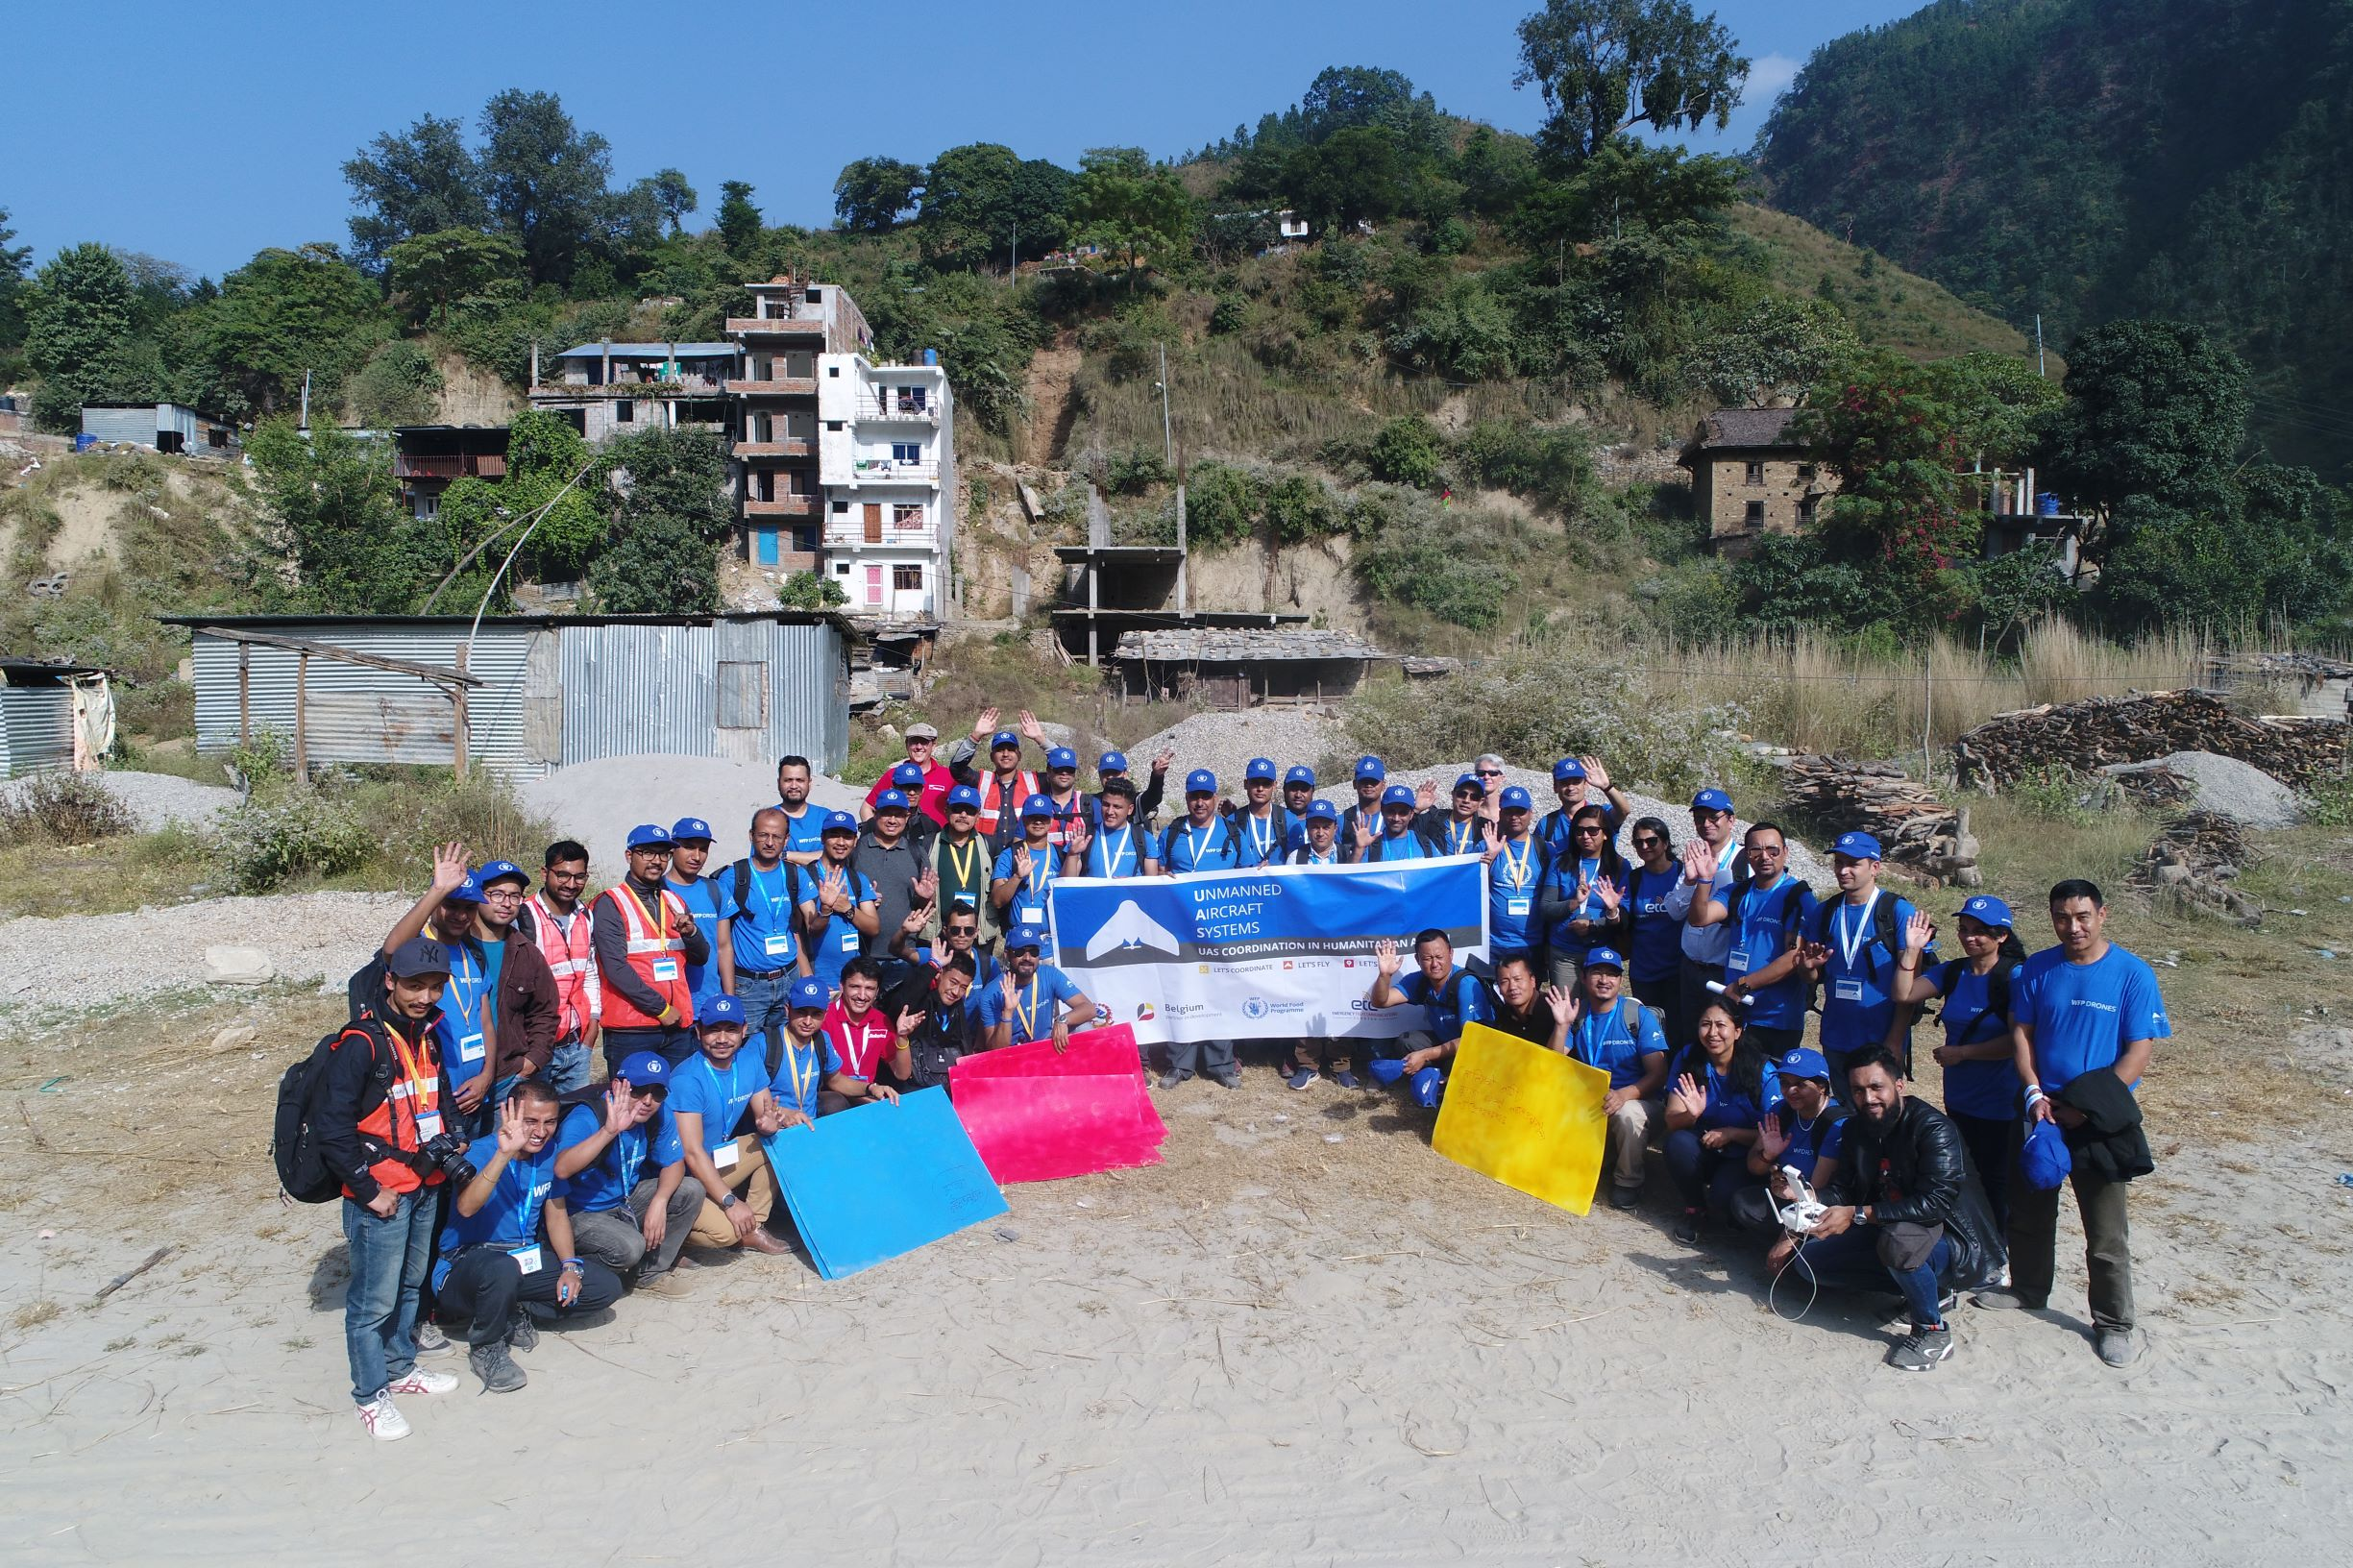 Participants of the WFP Drones training in Katmandu, Nepal. Photo: WeRobotics / Subash Gurung